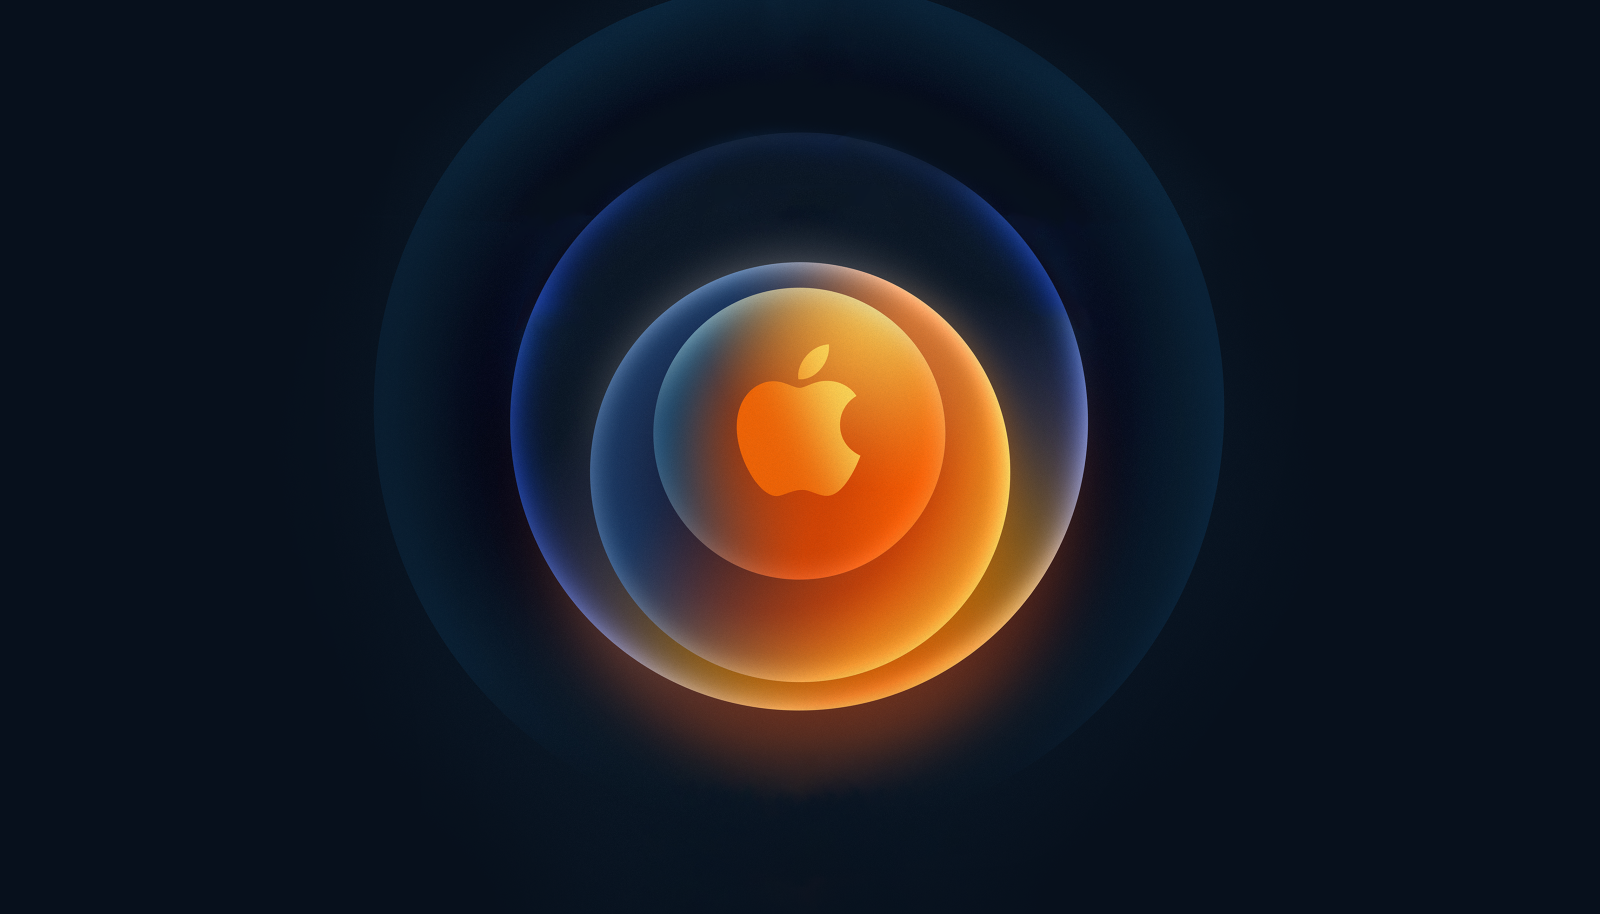 10.13-Apple-Event.png